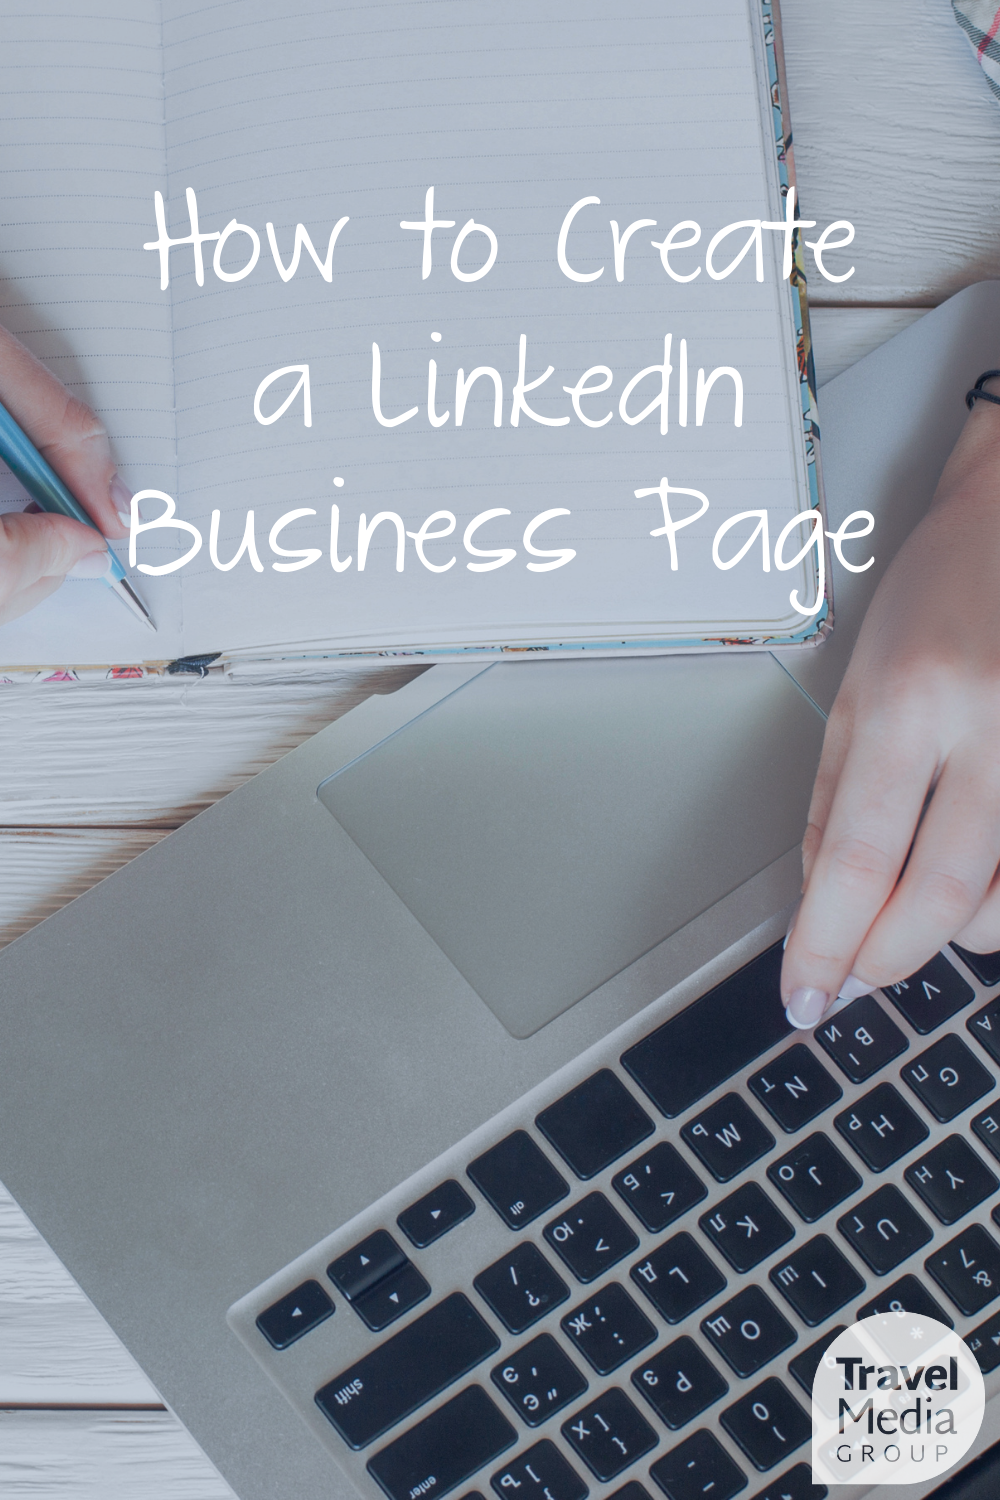 Getting a LinkedIn Business page is pivotal to your marketing strategy. Our blog walks you through how to get going.